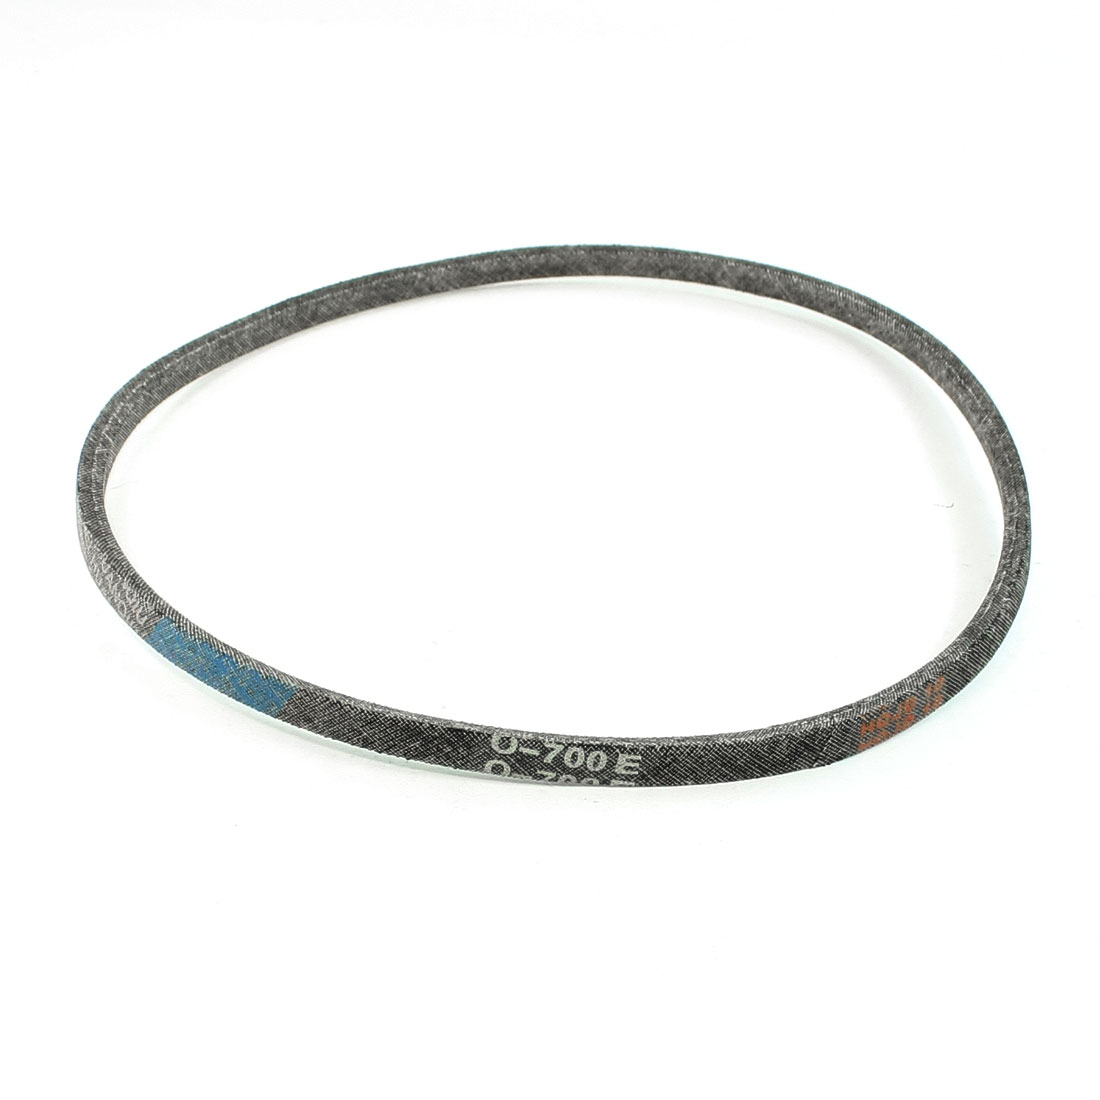 Black Washing Machine Motor O Type V Belt Fit Girth 700mm Thickness 6mm